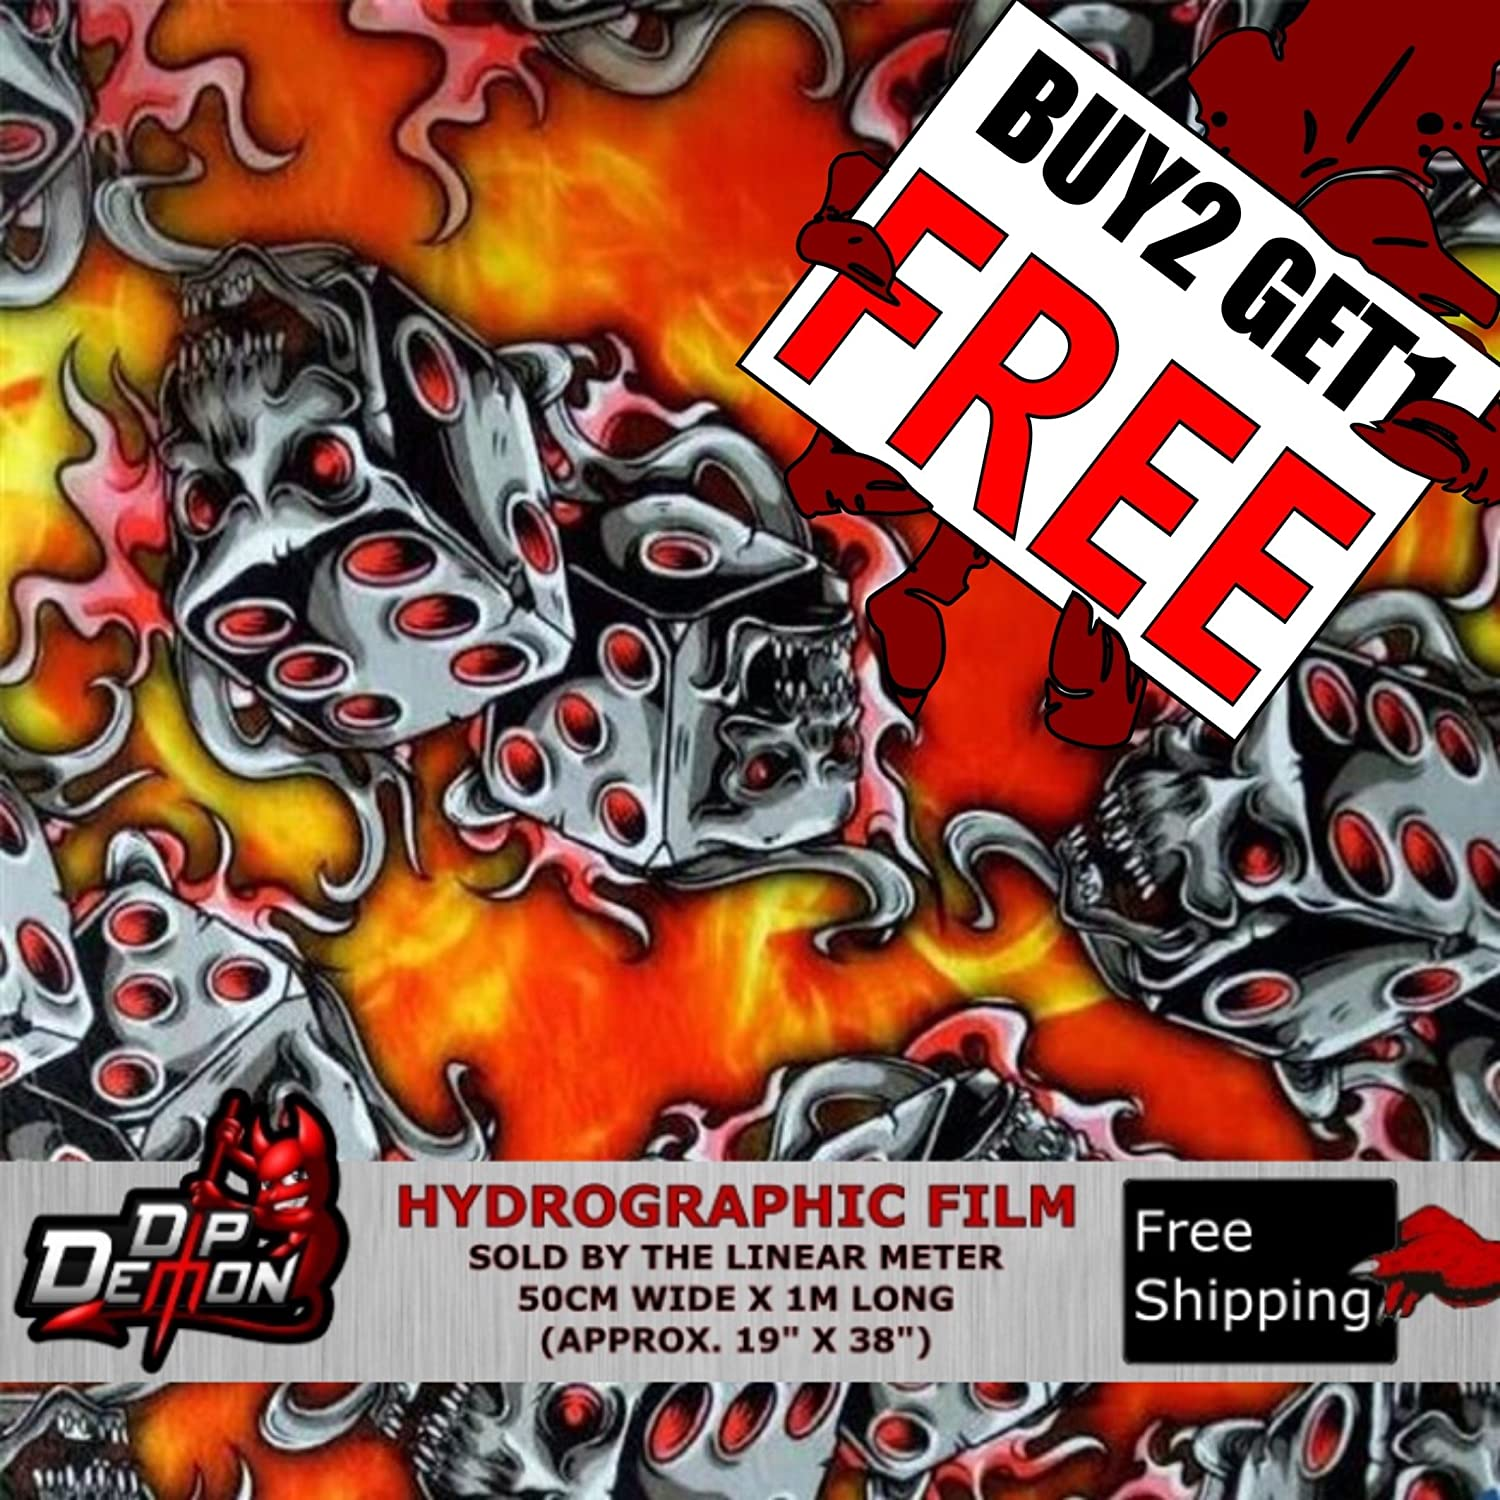 HYDROGRAPHIC WATER TRANSFER HYDRO DIPPING HYDRO DIP FILM BLACK DICE 1M